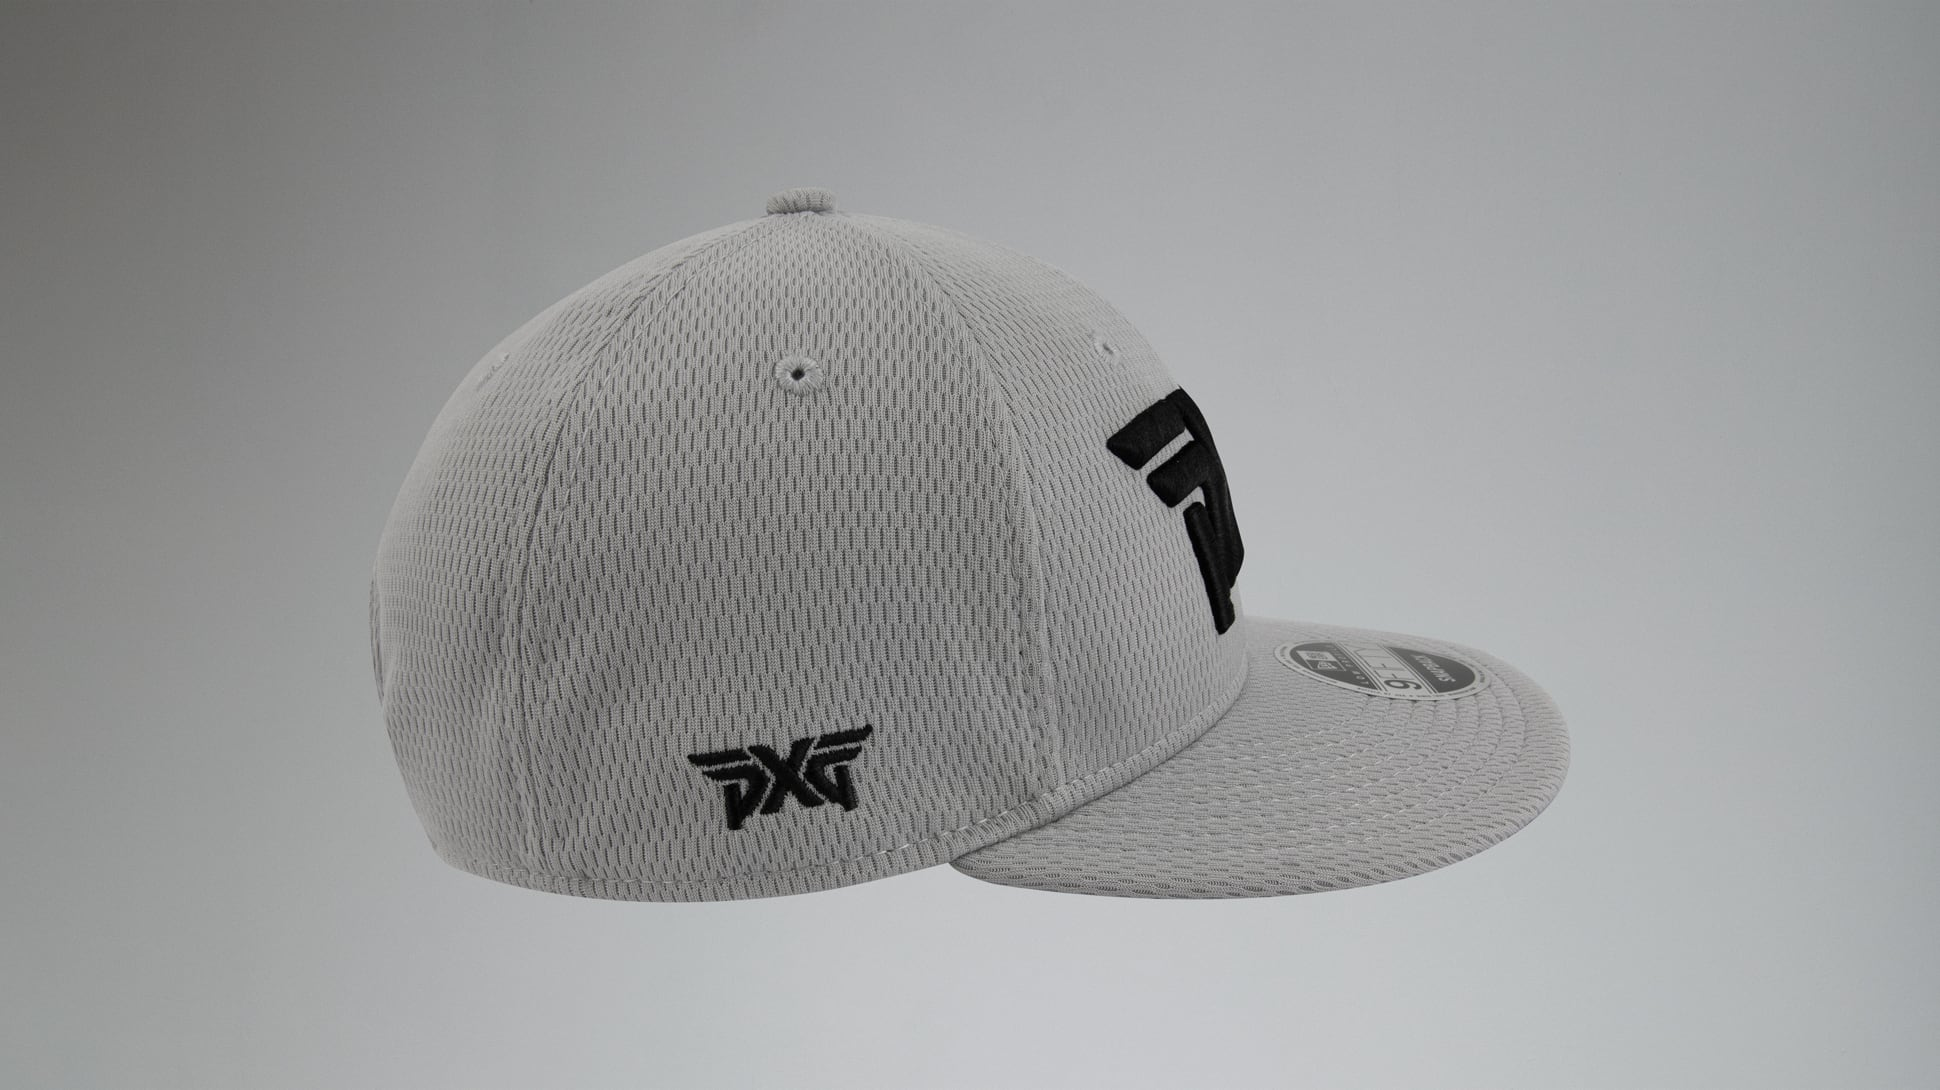 Performance Line 9FIFTY Low Profile Cap Image 3